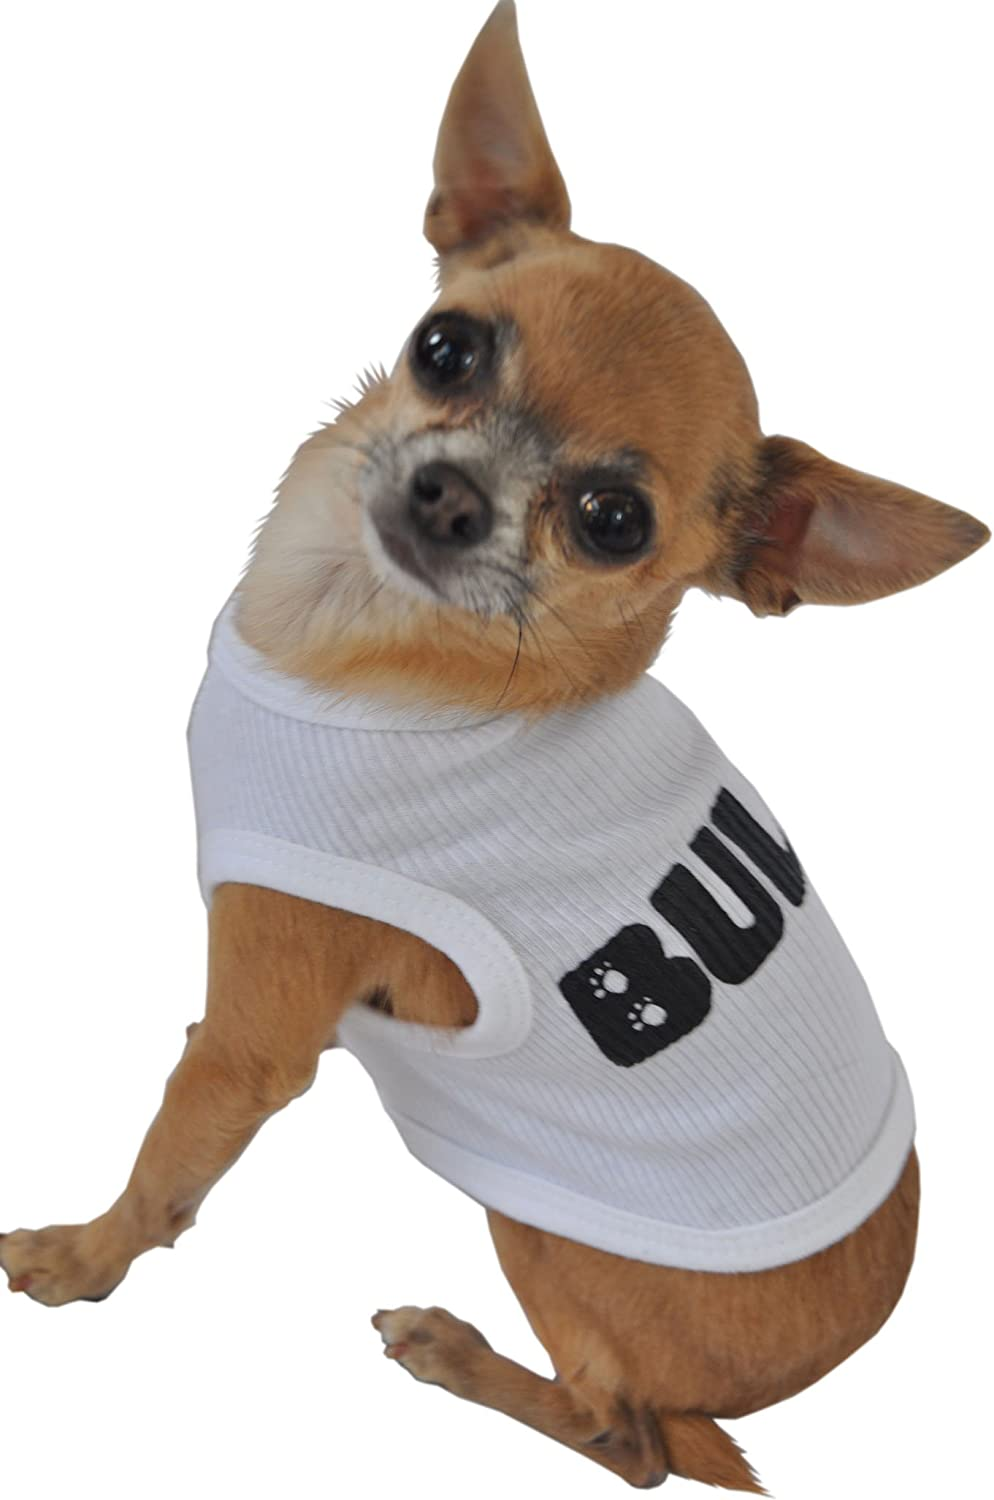 Ruff Ruff and Meow ExtraLarge Dog Tank Top, Bully, White